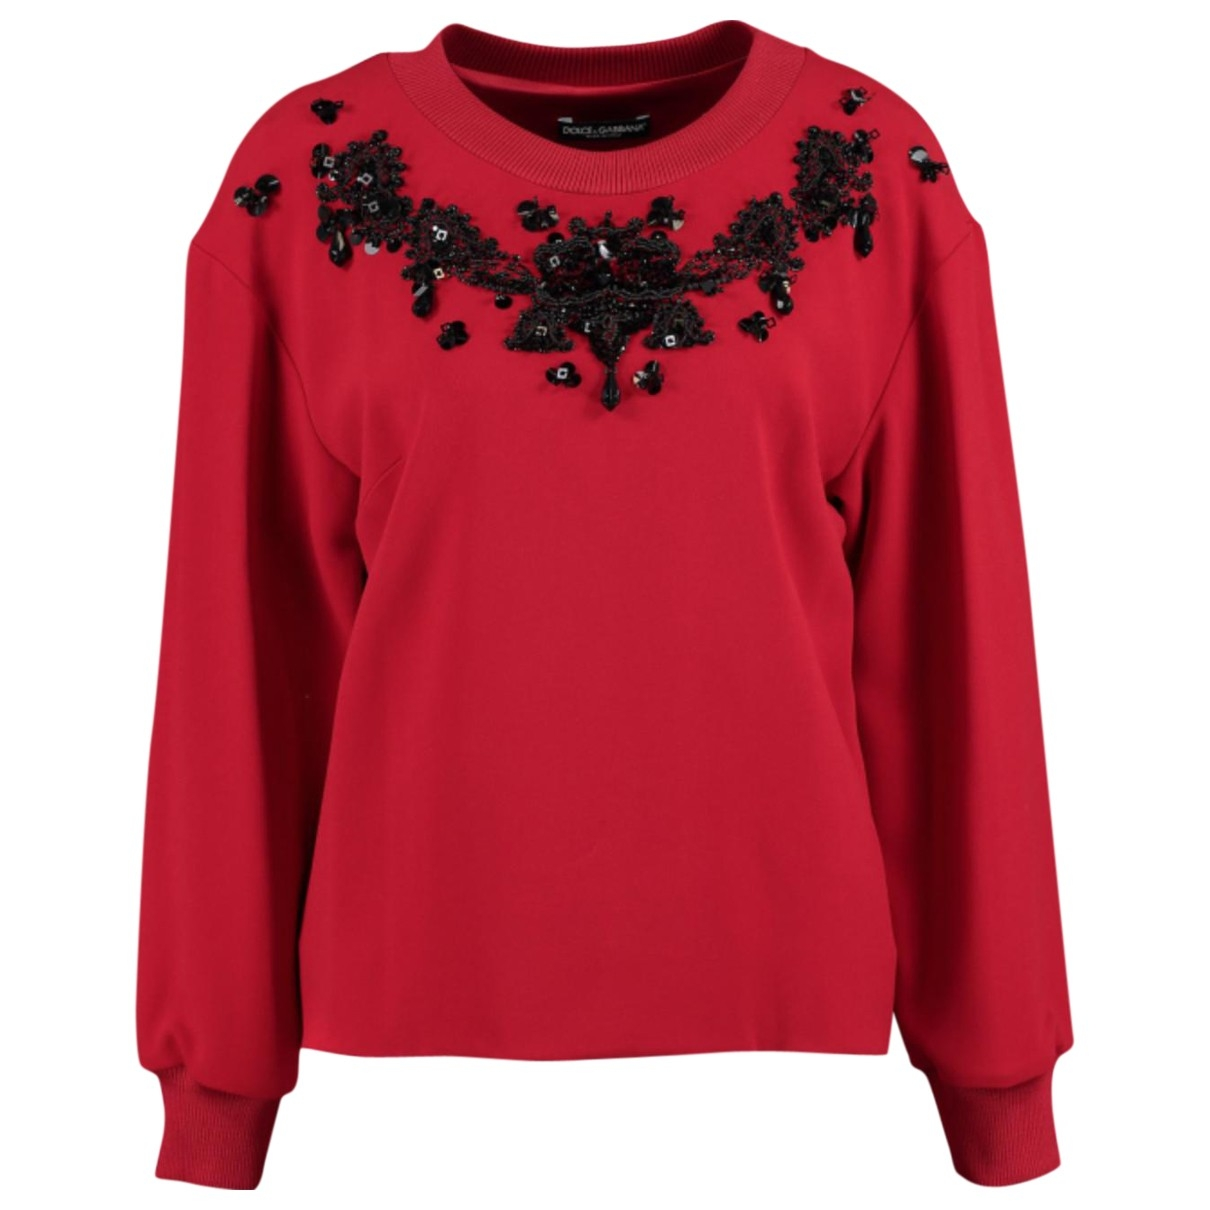 Dolce & Gabbana \N Red  top for Women 38 IT